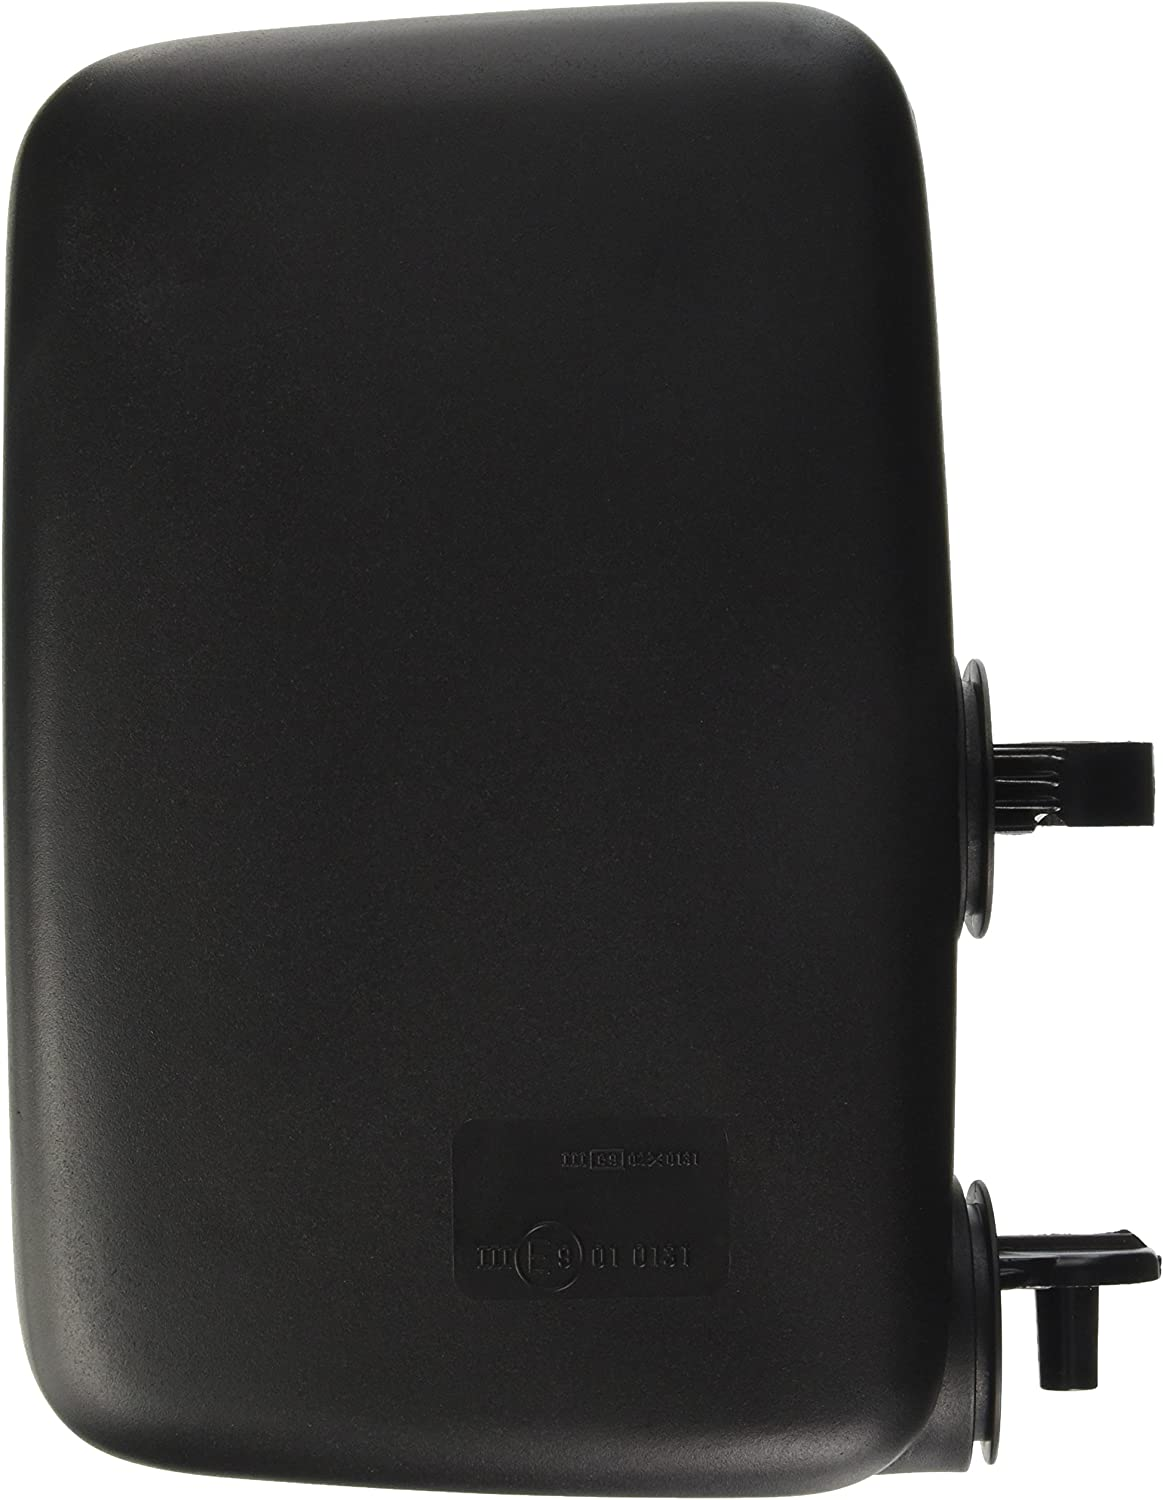 Equal Quality rd00211/ CALOTTA Right Rearview Mirror Cover